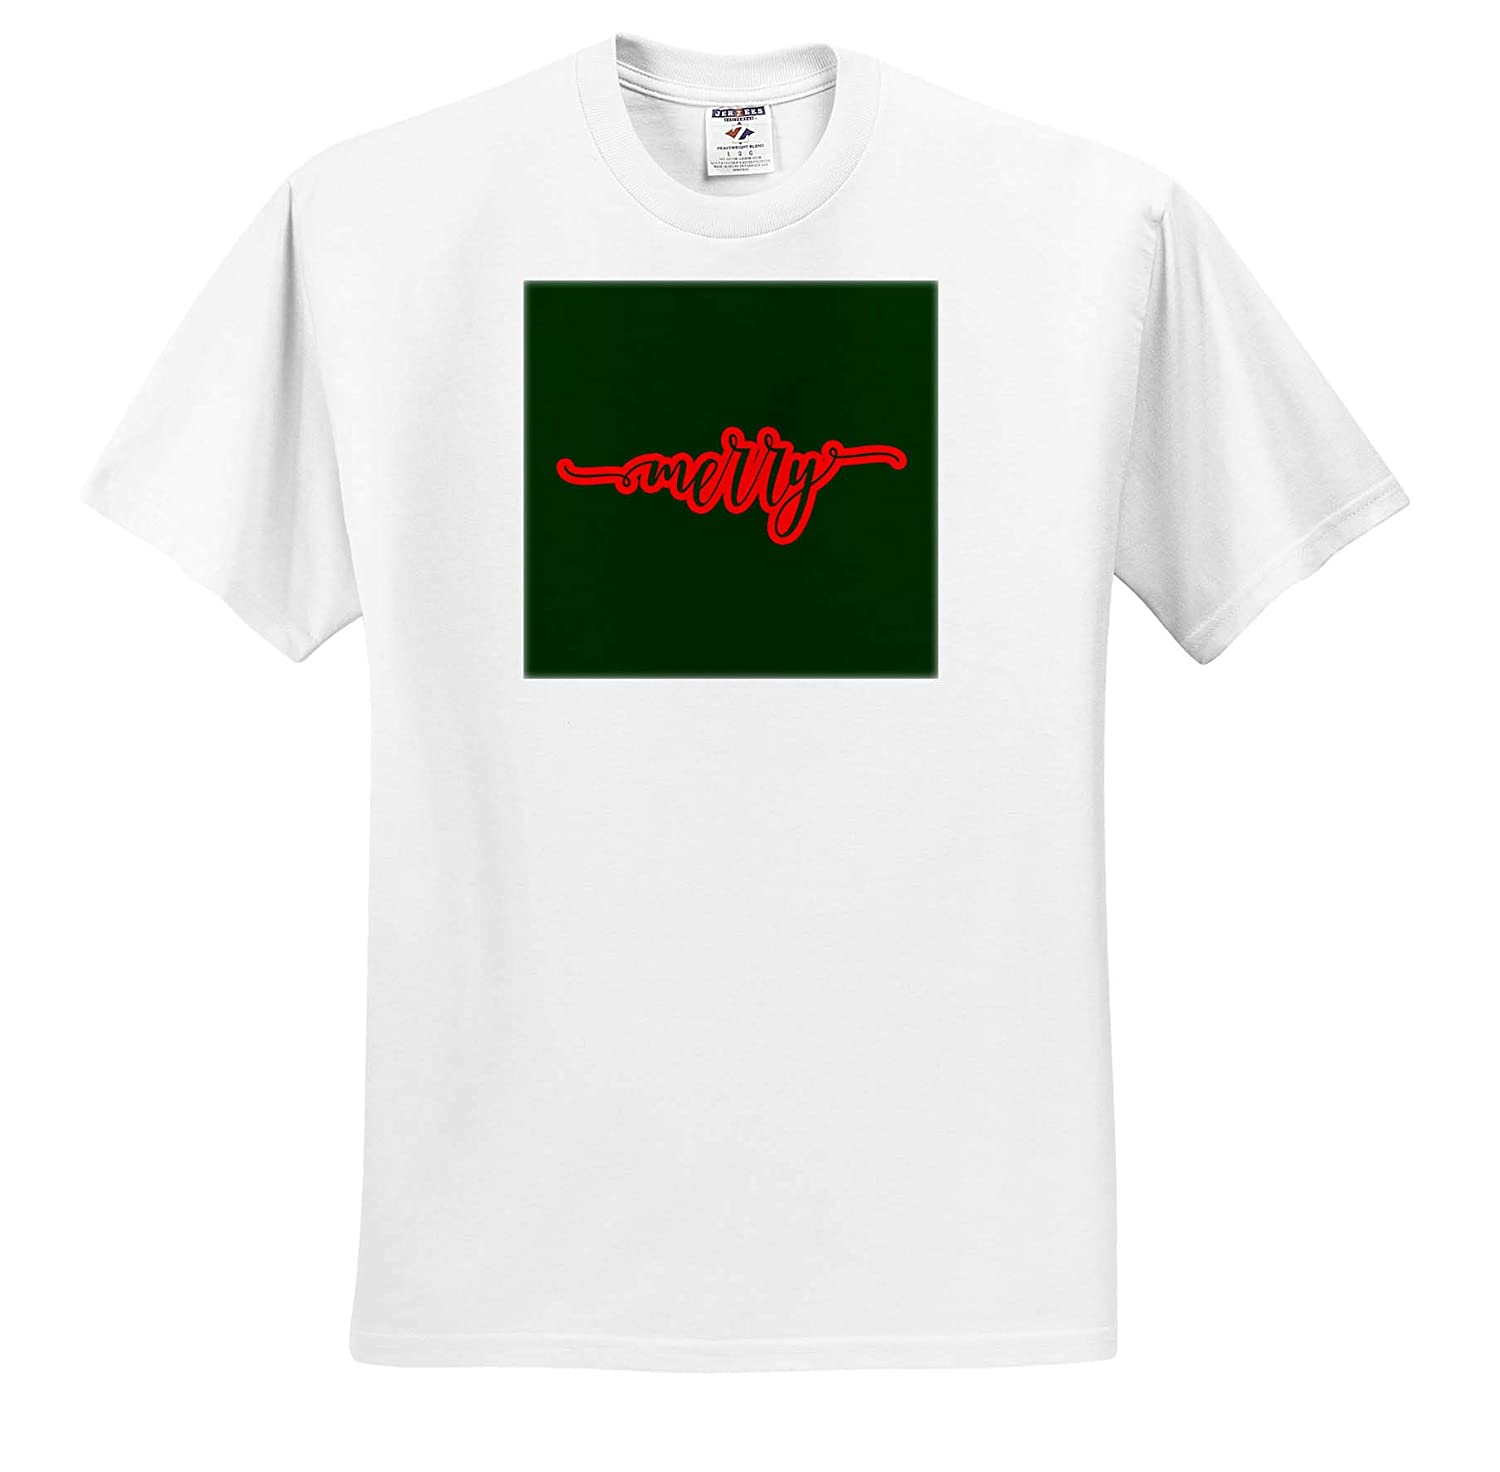 Cheerful and Merry 3dRose AmansMall Winter 3drsmm Merry Holidays and Typography T-Shirts Merry Christmas,Be Merry